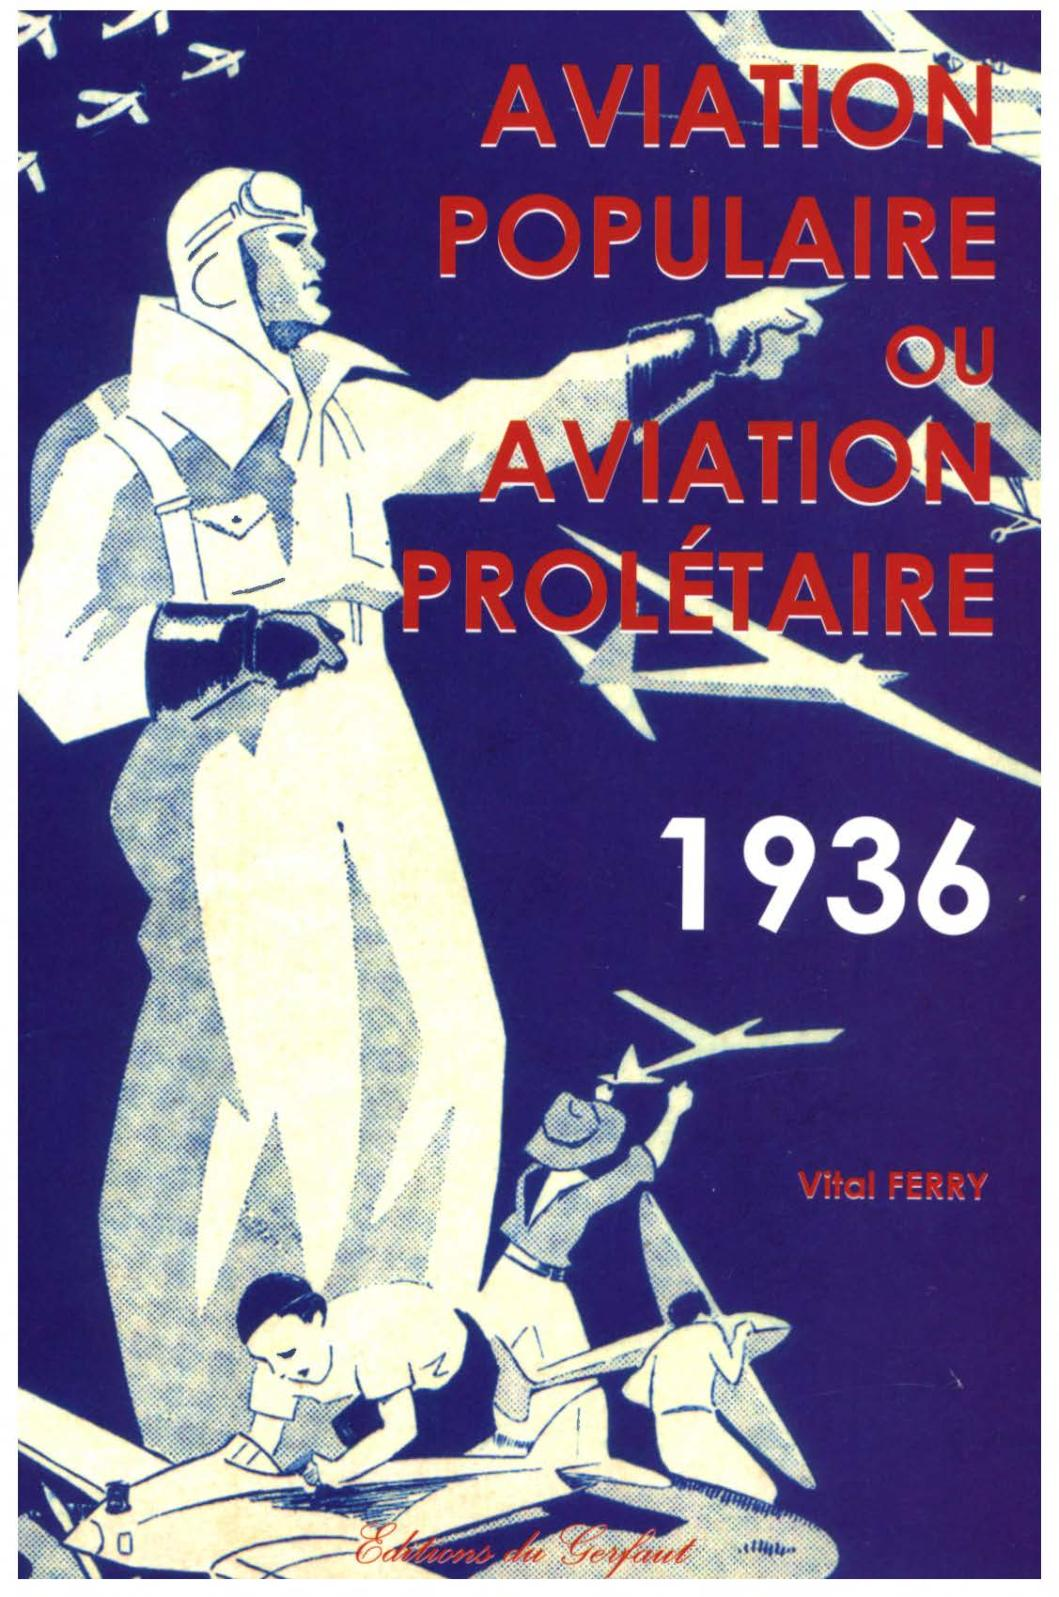 2007 Aviation Populaire Ou Aviation Prolétaire 1936, Par Vital Ferry